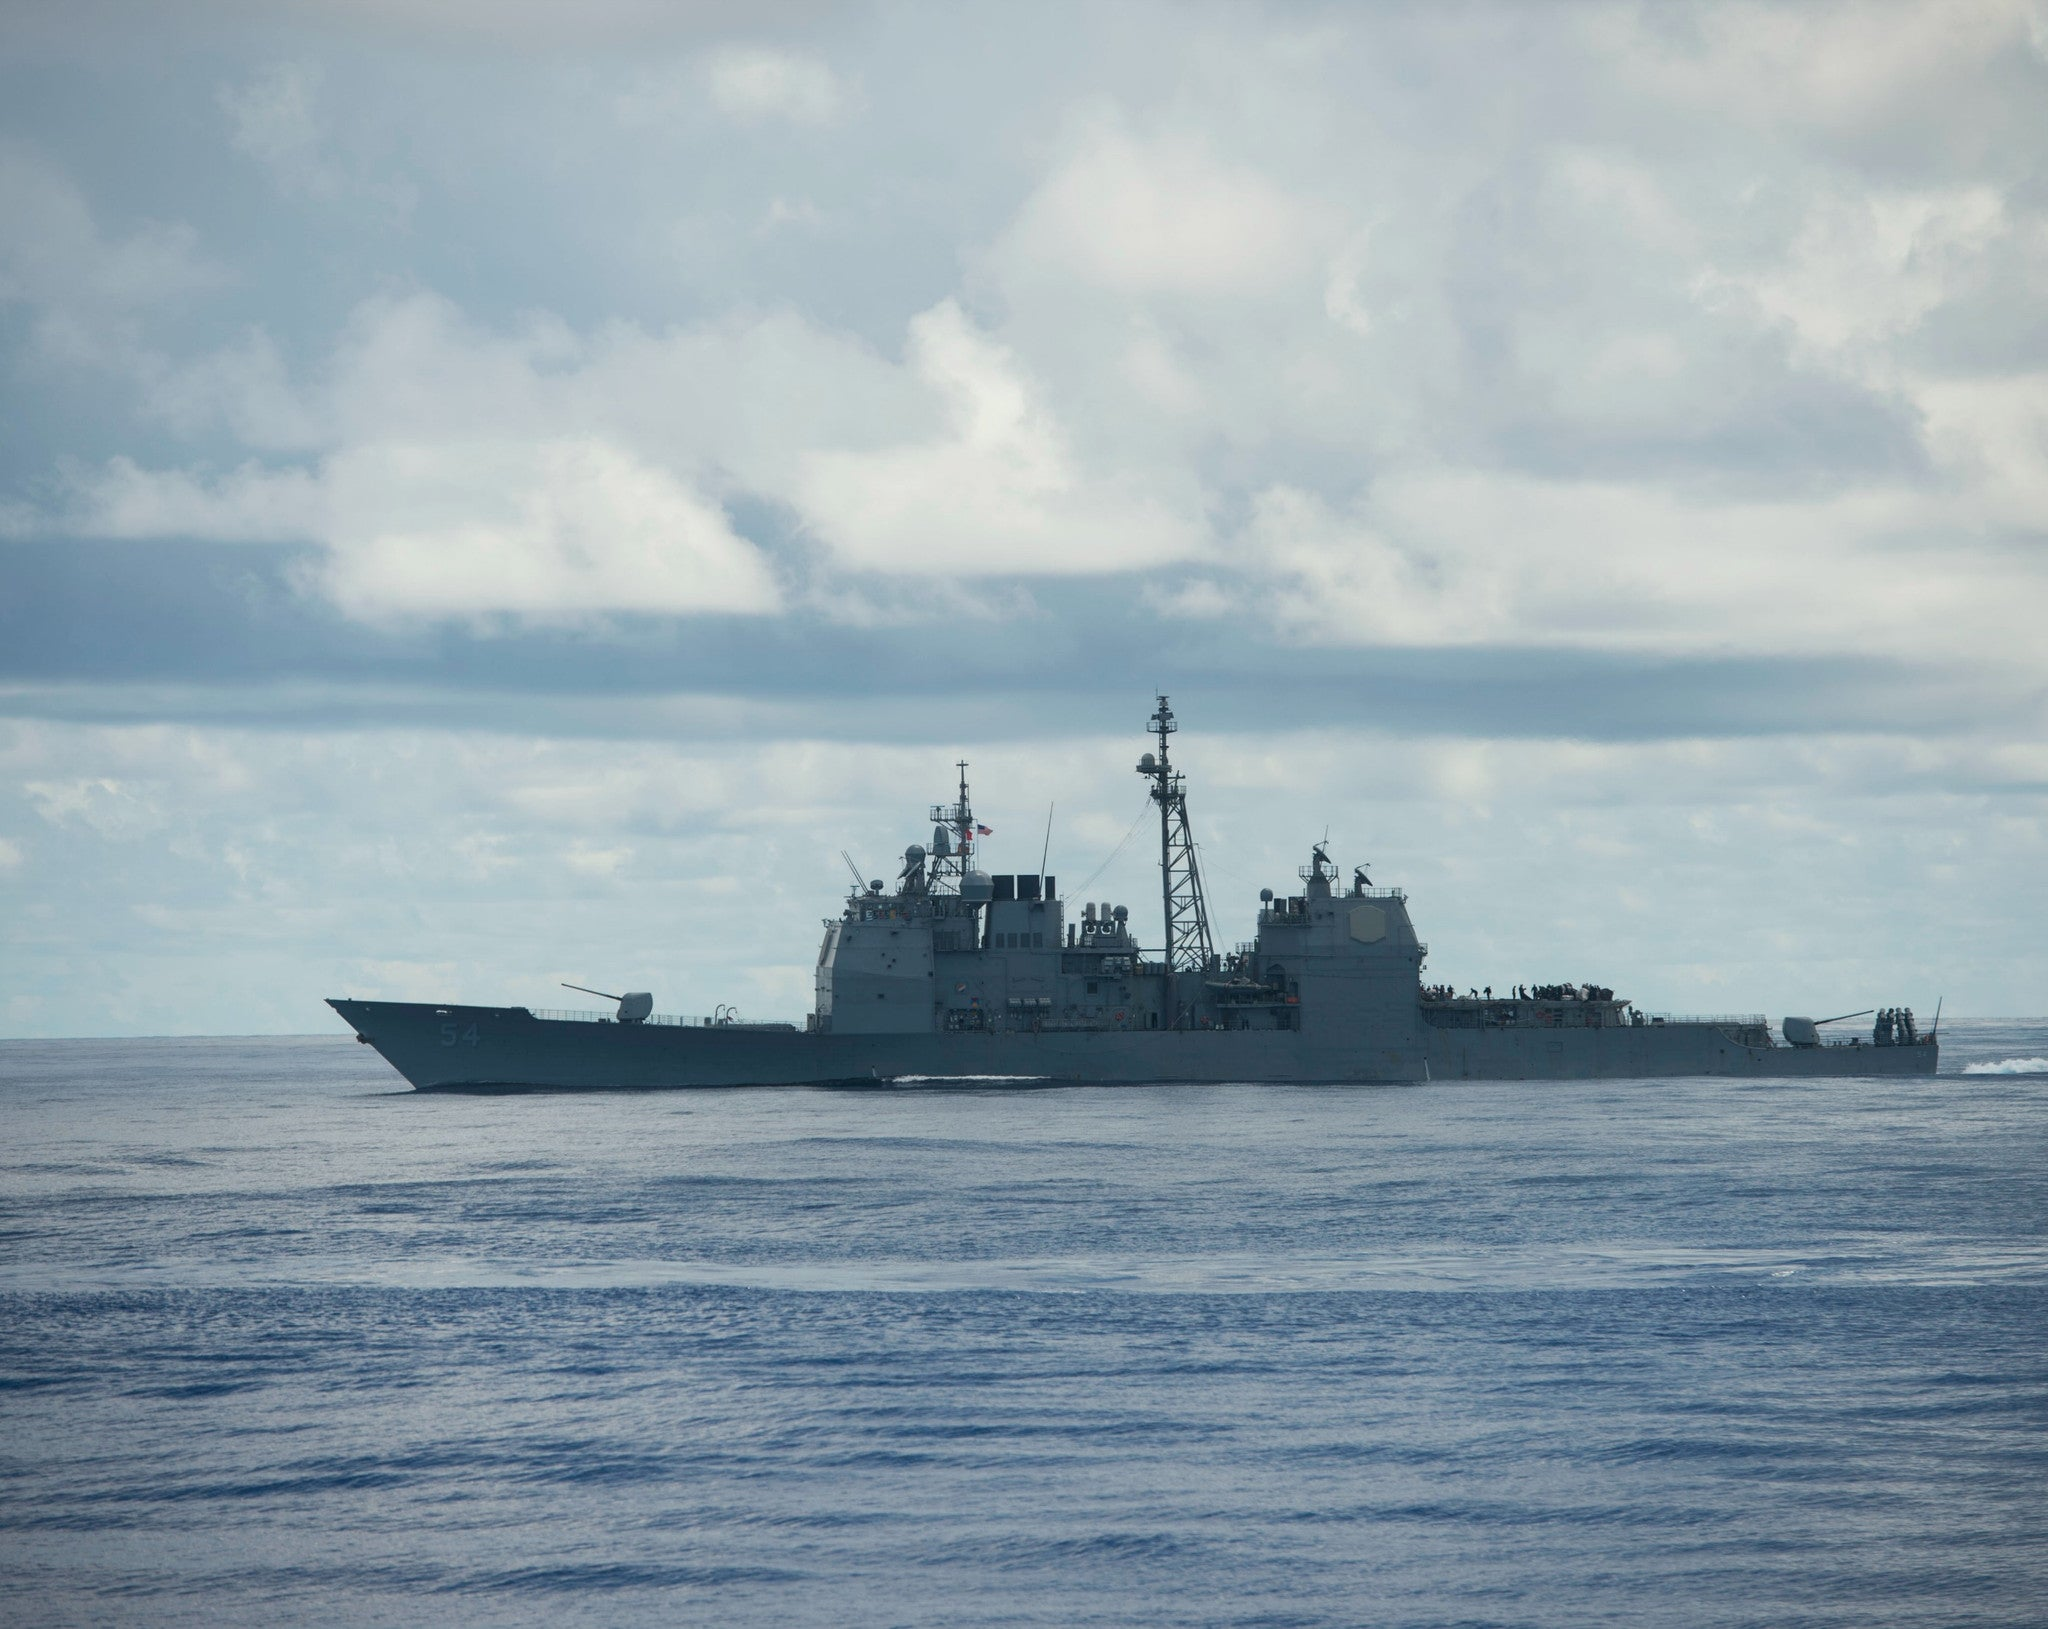 "USS Antietam CG-54 Philippine Sea August 13, 2012 - 8 x 10"" Photograph"